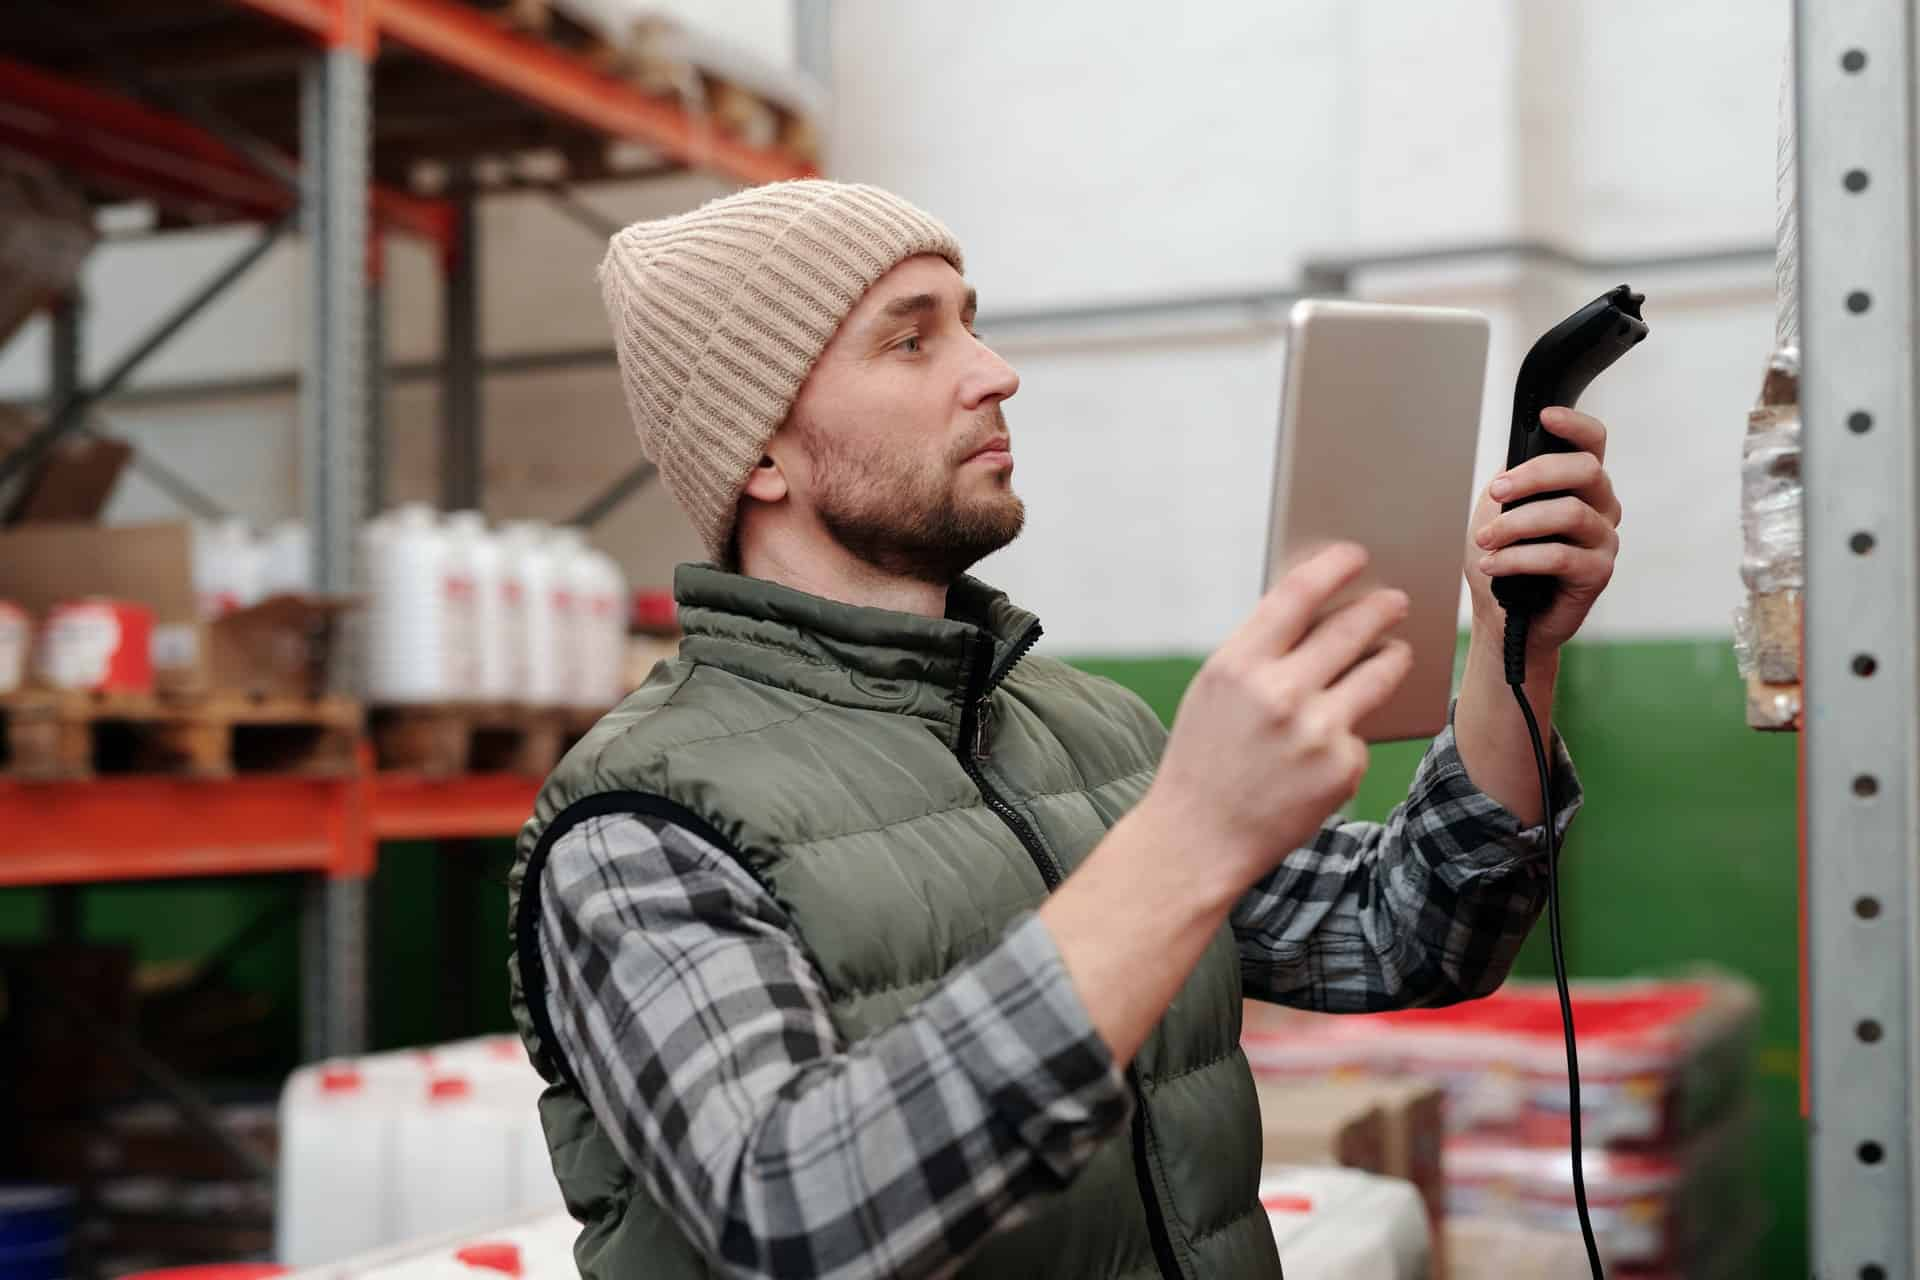 Inventory Management Requirements: What It Takes To Get Set Up featured image